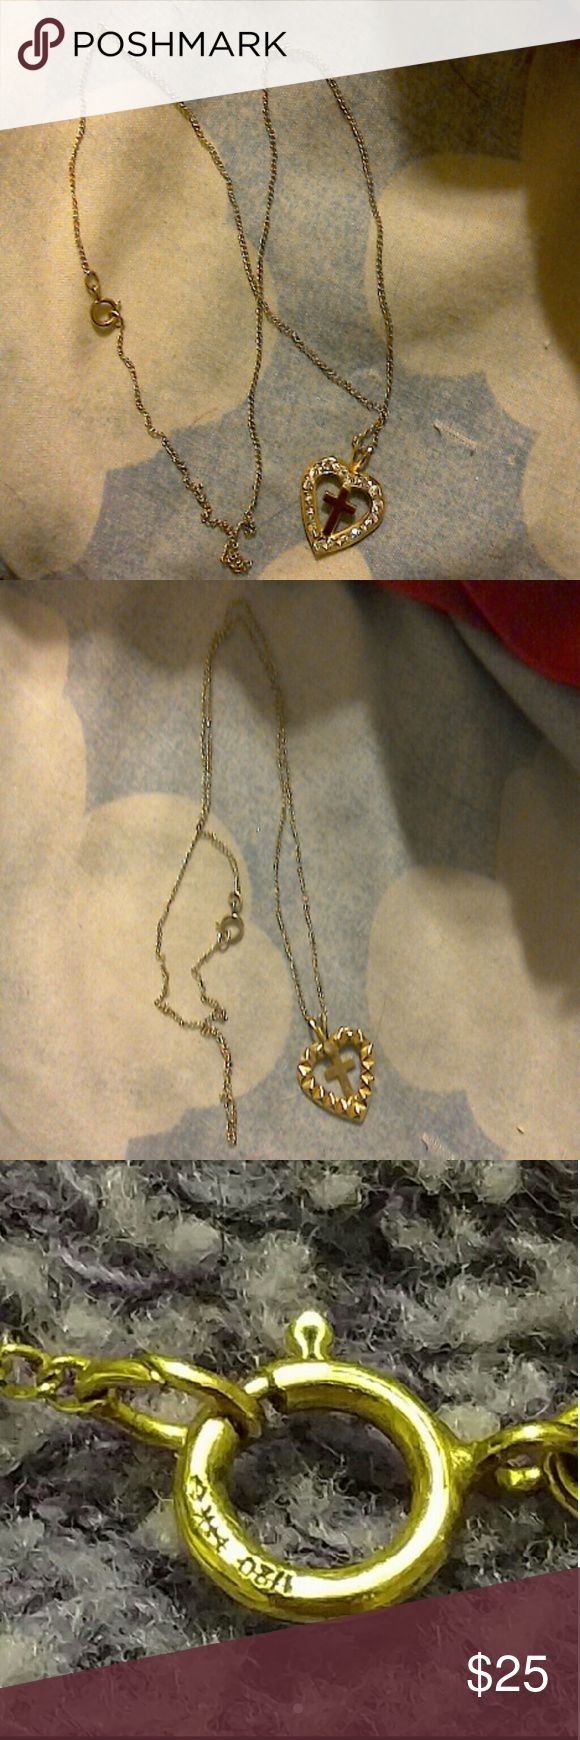 Gold necklace 120 k gold necklace with 6k gold pendent Jewelry Necklaces